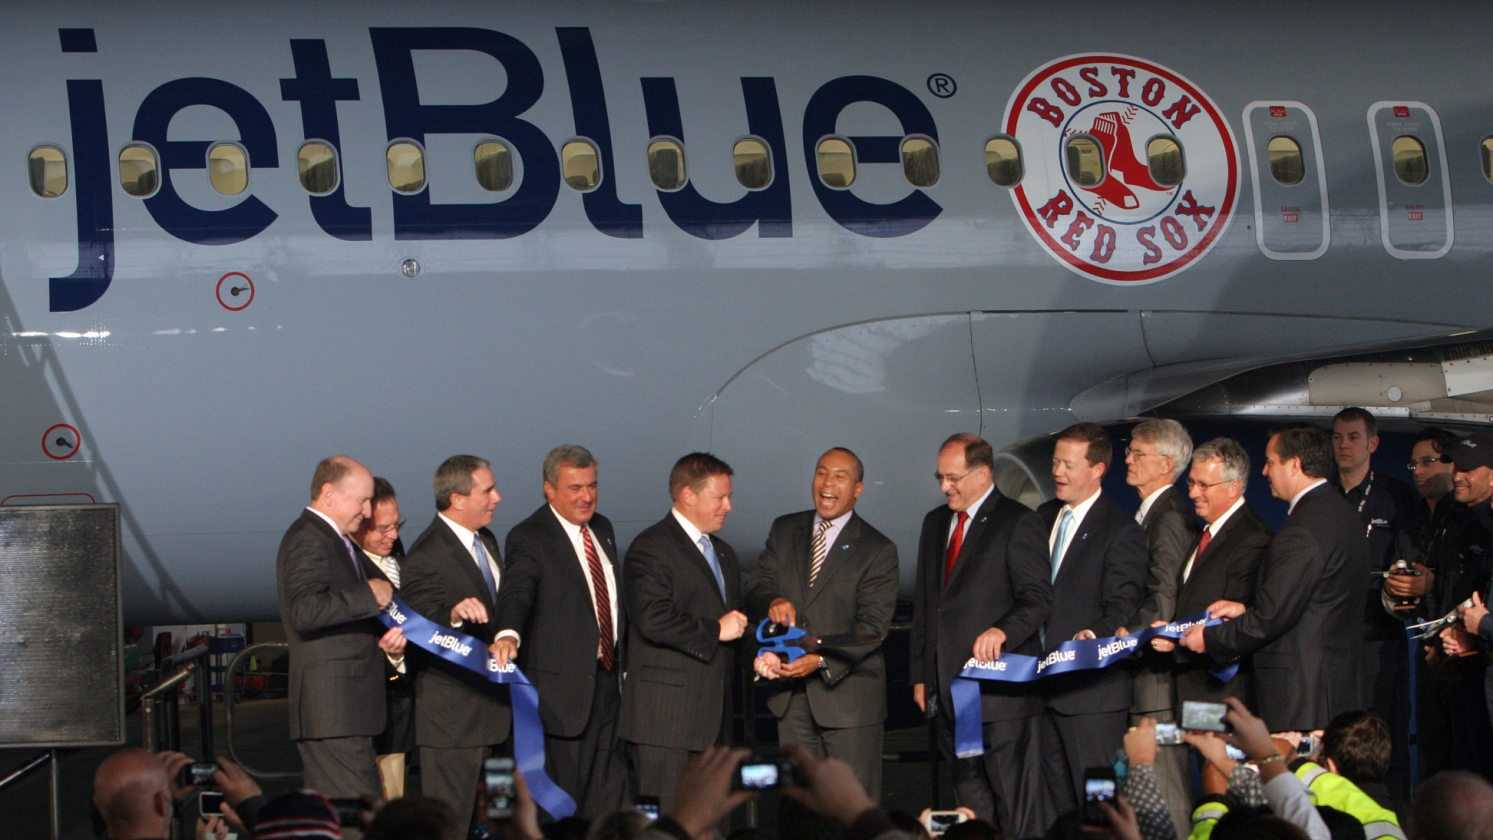 Jetblue Boston Celebration